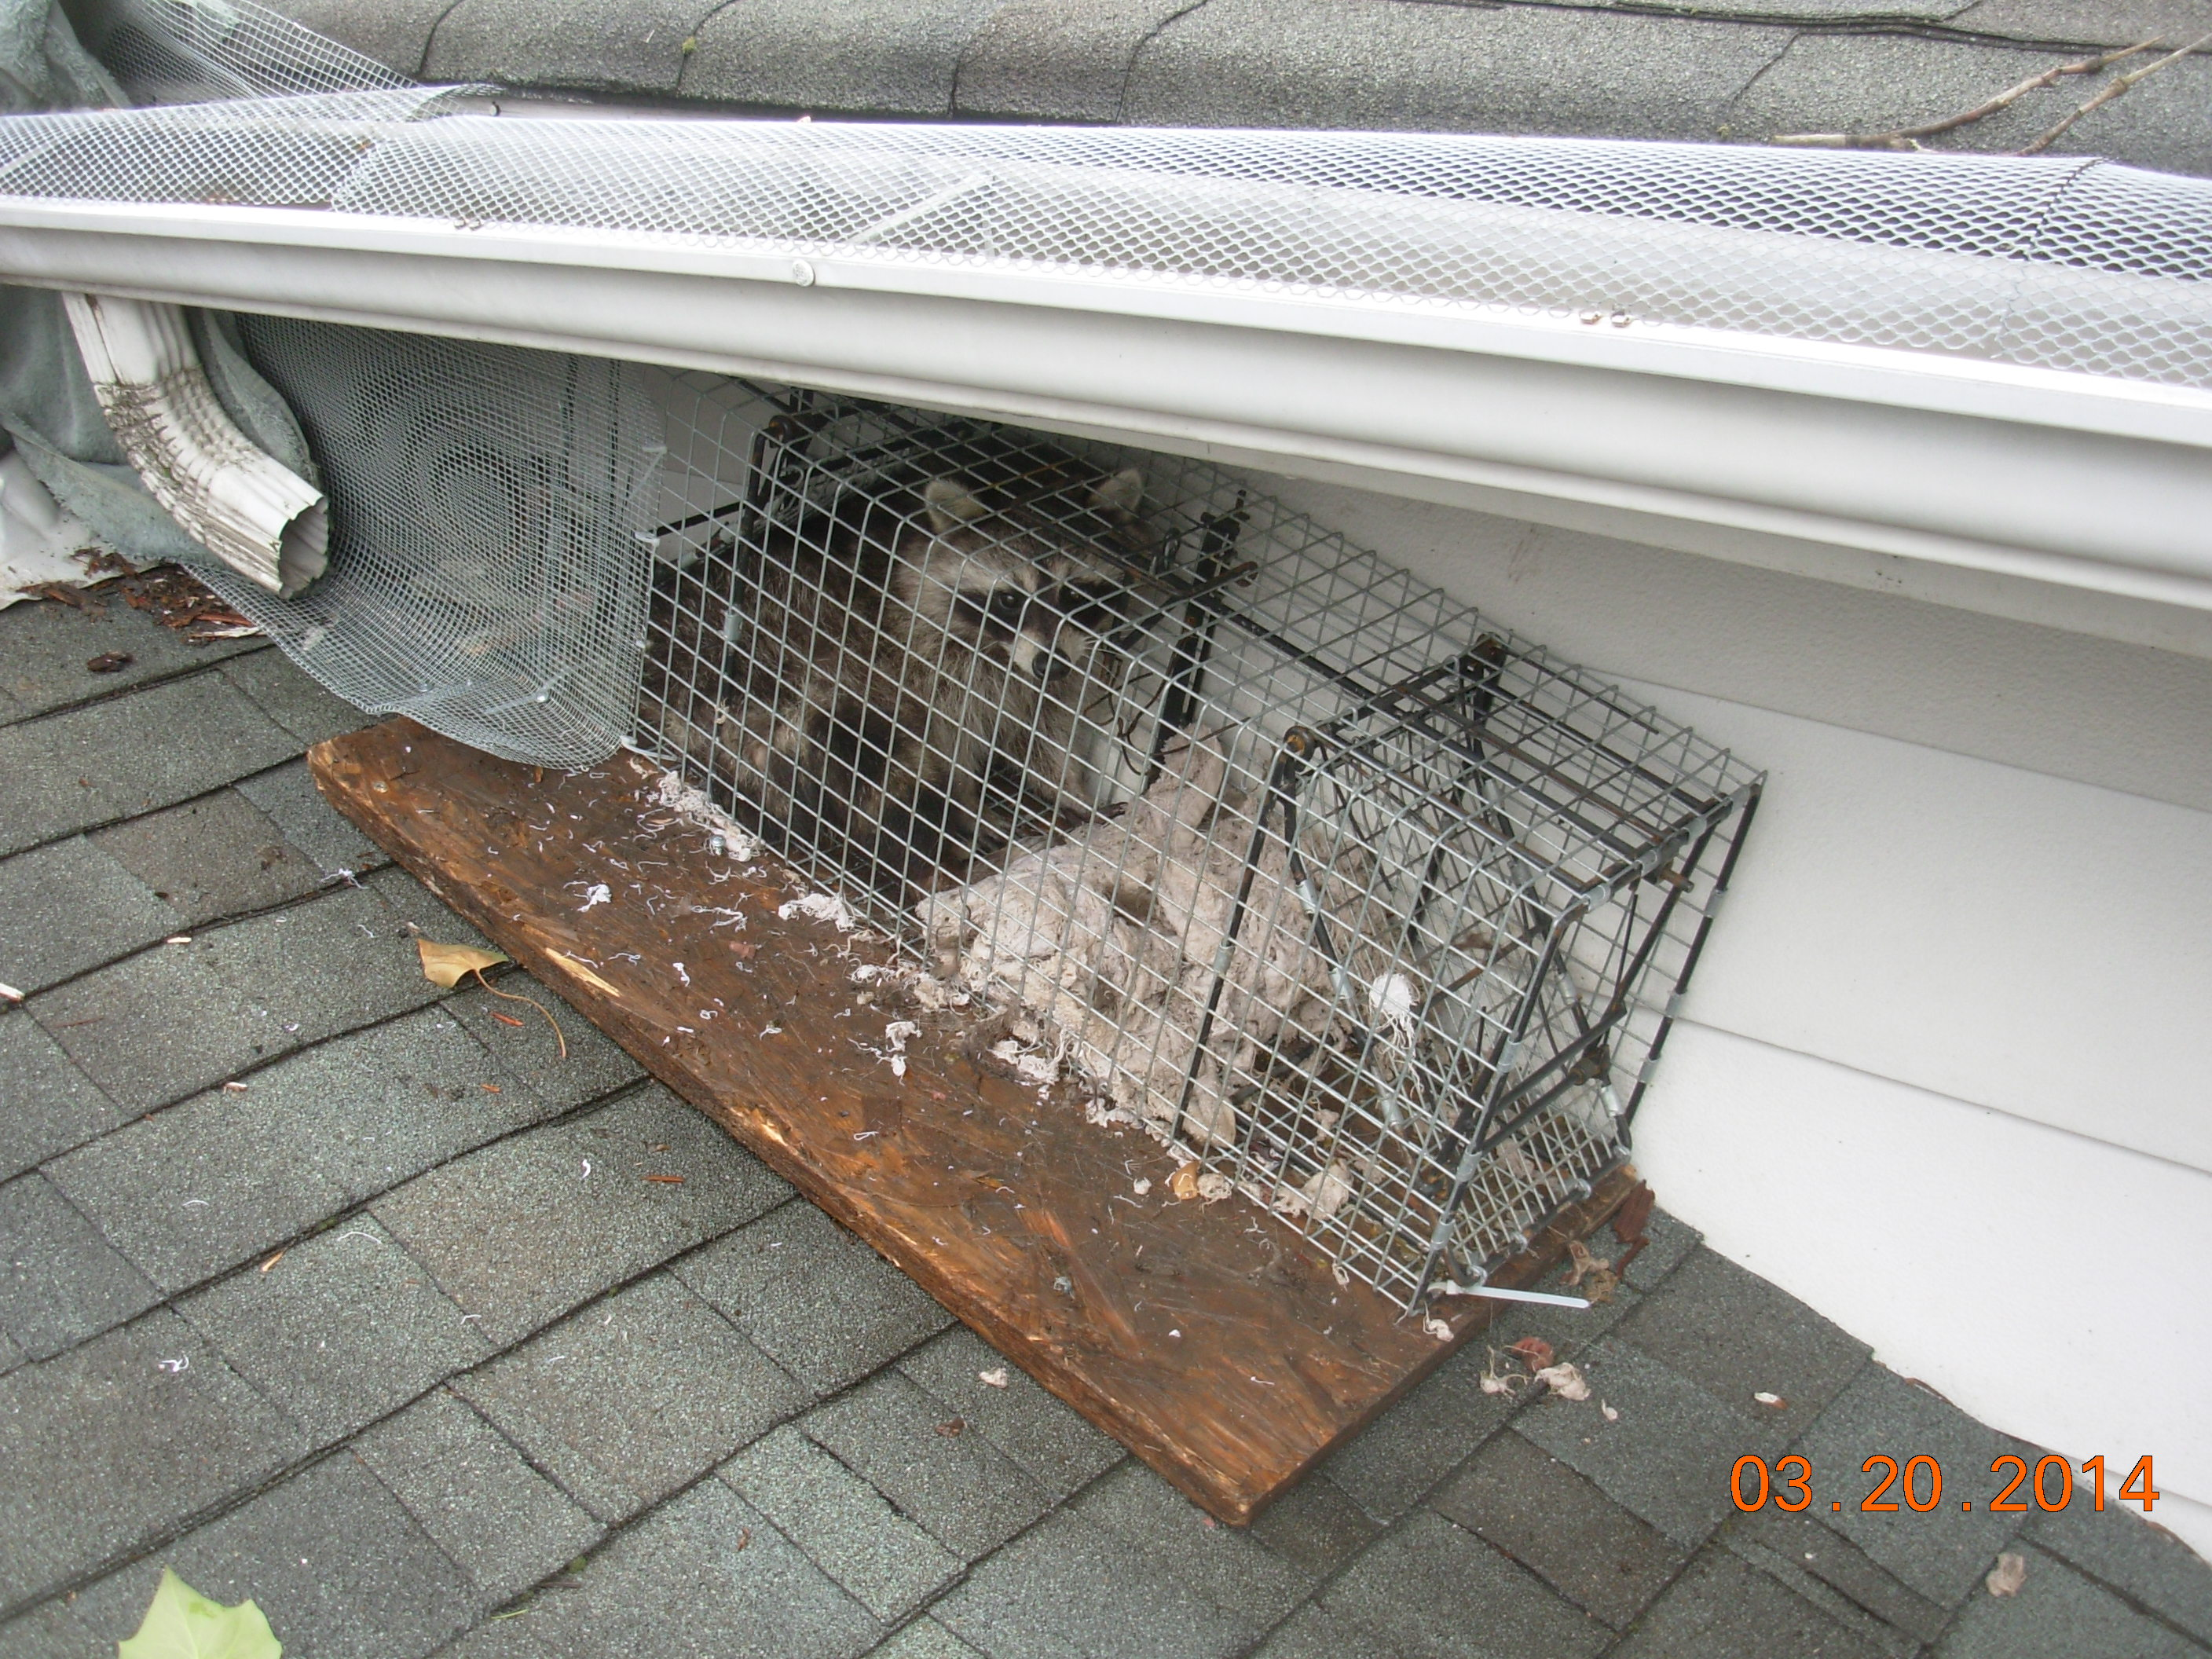 Raccoon Removal and Damage Repair | How to Keep Raccoons Out